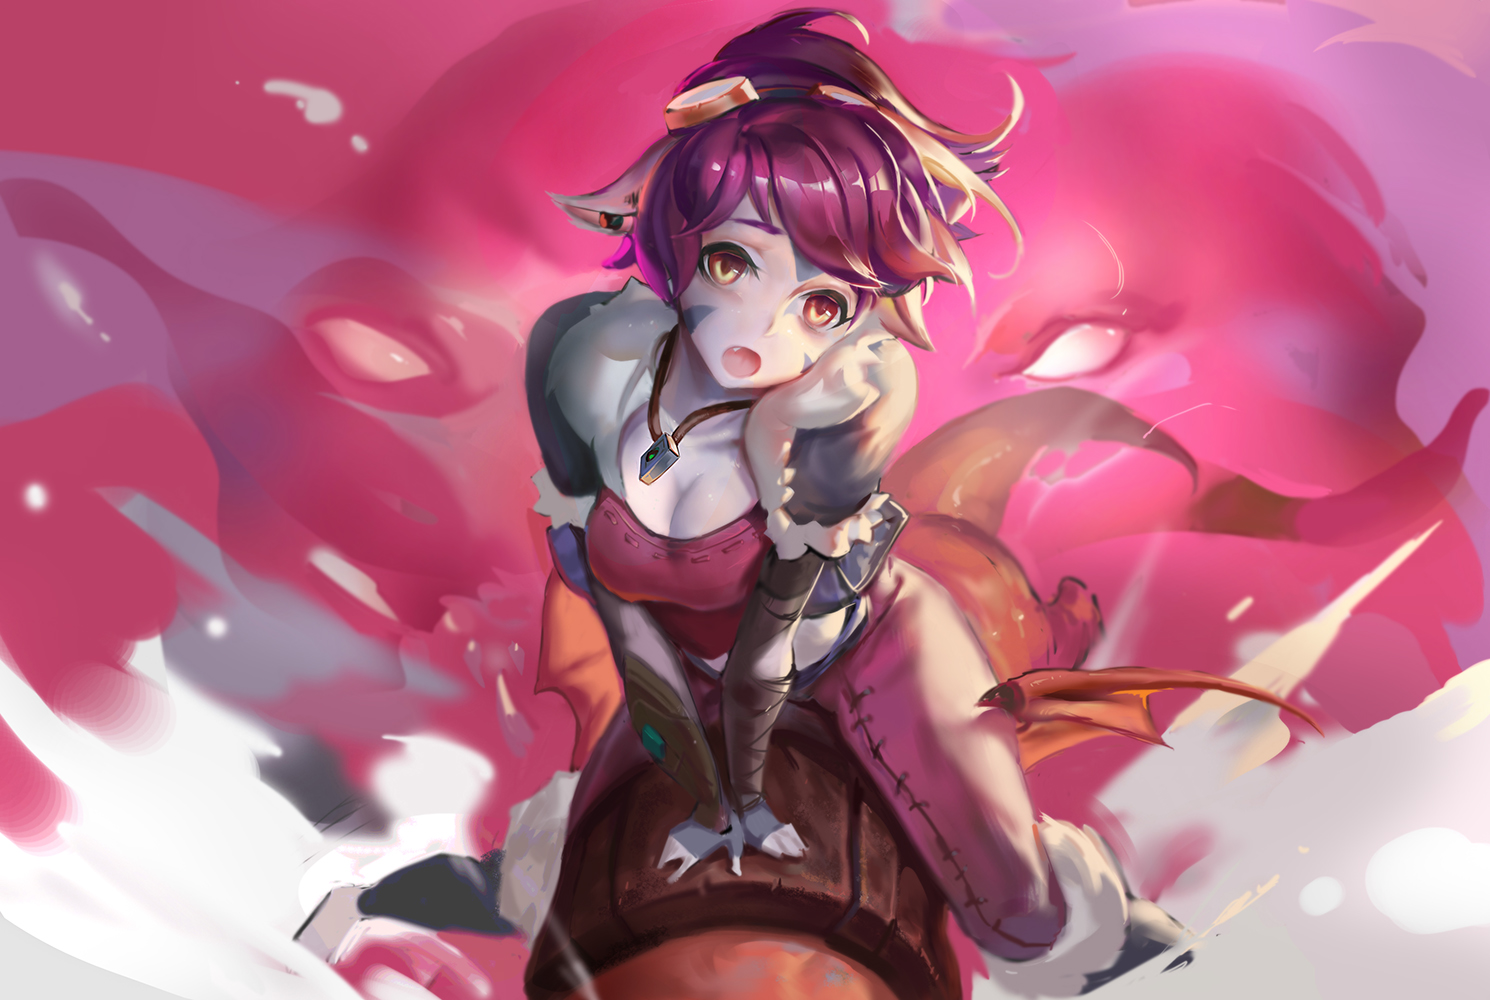 anthropomorphism breasts cleavage fang goggles league_of_legends necklace orange_eyes pointed_ears ponytail purple_hair rabbit_(tukenitian) tristana yordle